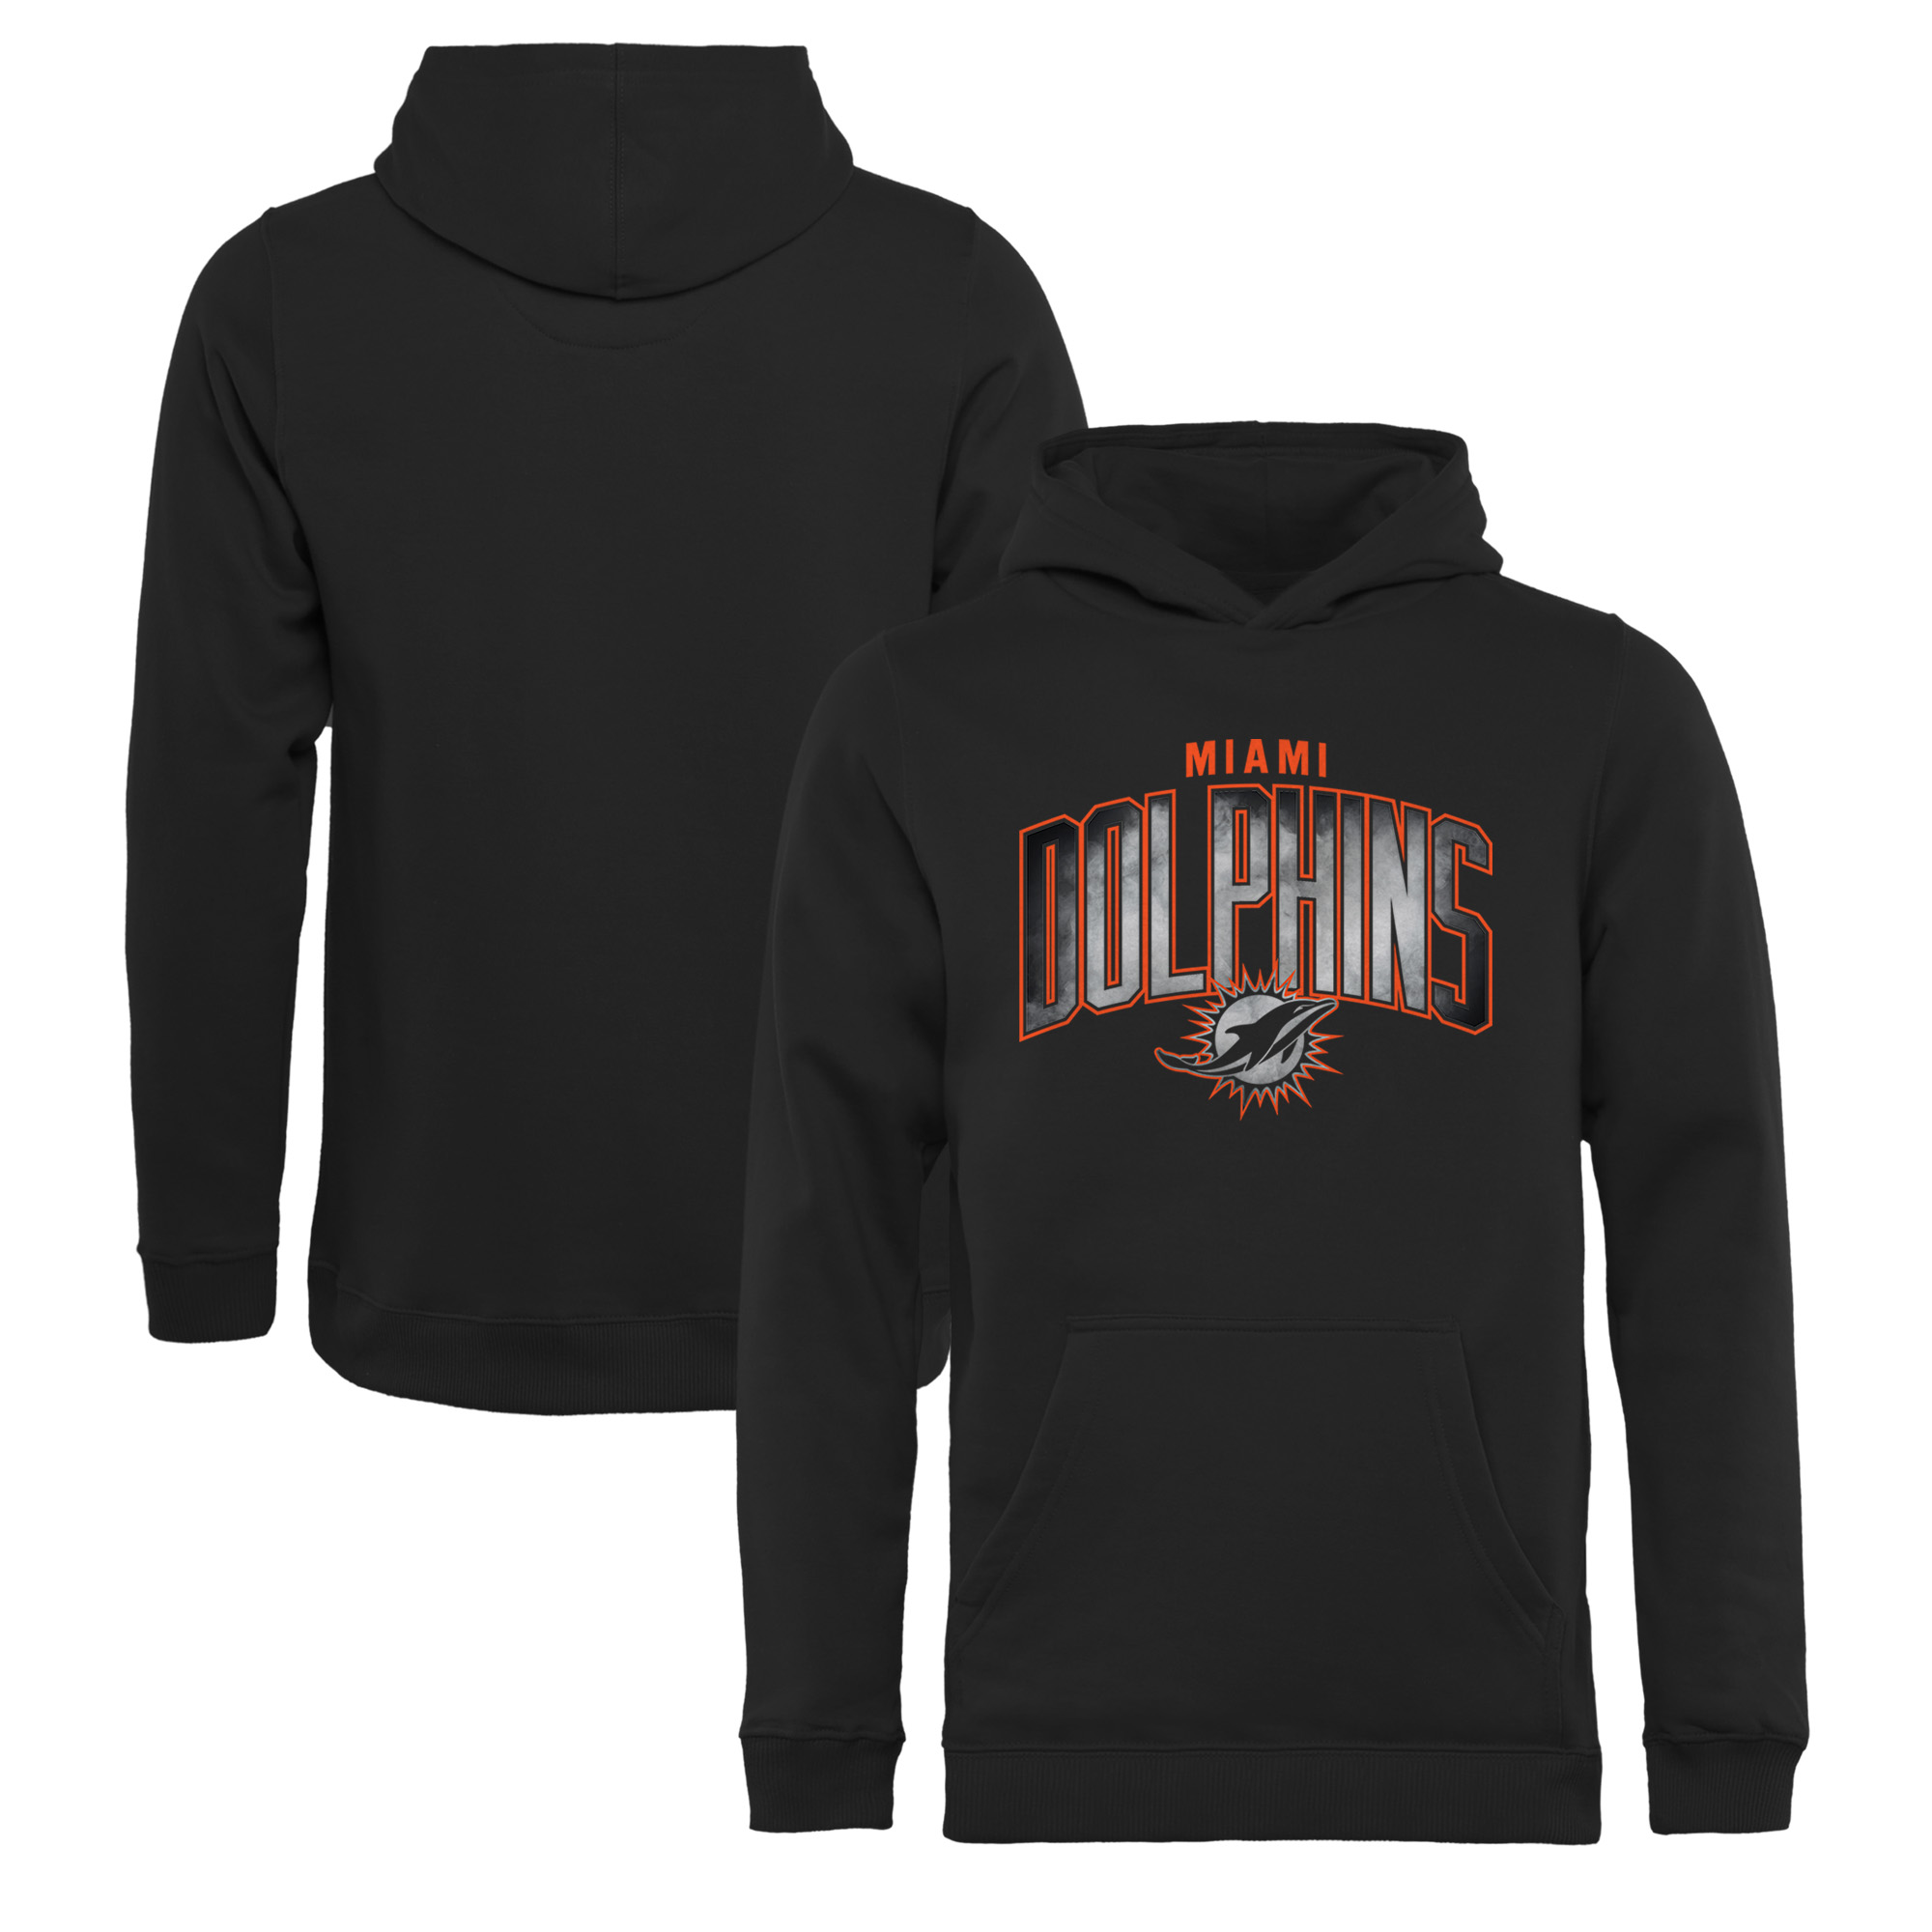 Miami Dolphins NFL Pro Line by Fanatics Branded Youth Arch Smoke Pullover Hoodie - Black